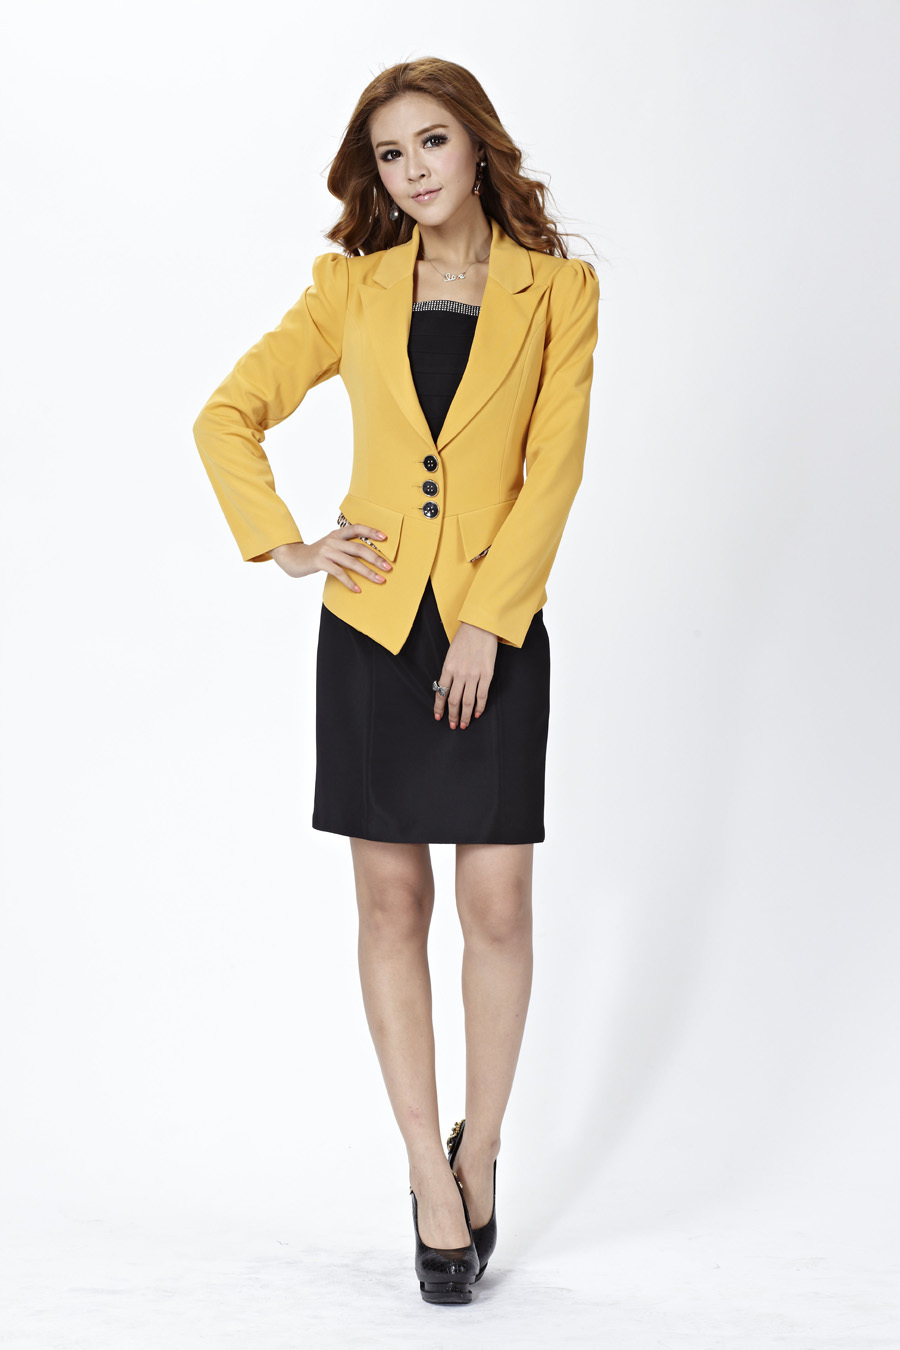 Find a selection of women's dress suits to easily transition from the cube to off the clock. Gear up in a collarless lace jacket with a matching dress for the day and head out in the same outfit for the evening.